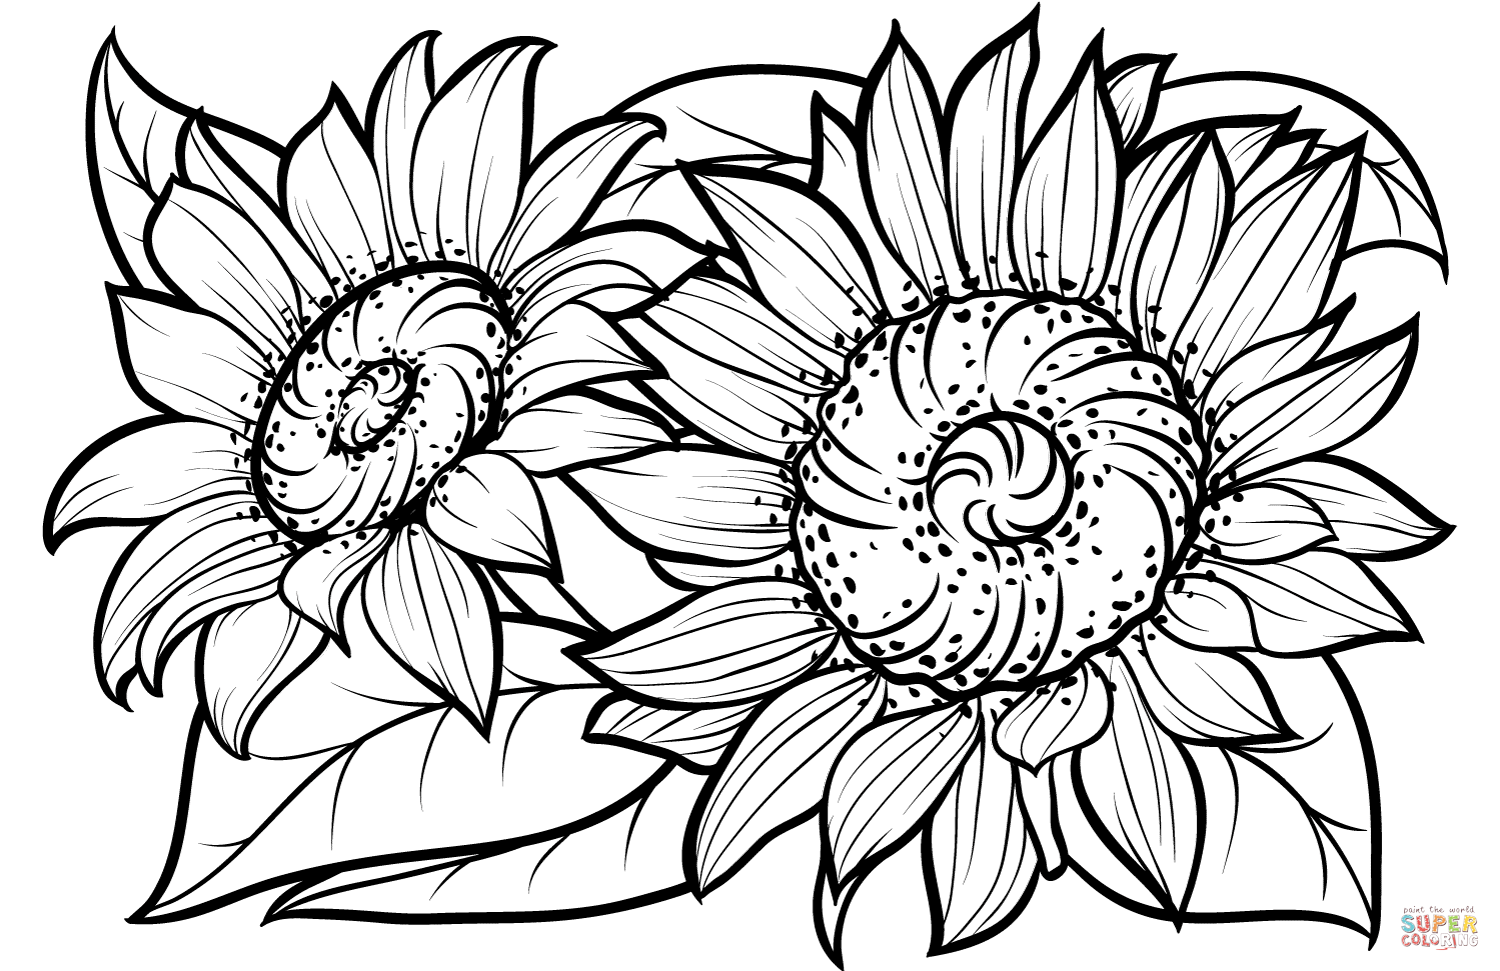 sunflower coloring pages to print happy sunflower coloring page happy sunflower coloring pages print coloring sunflower to